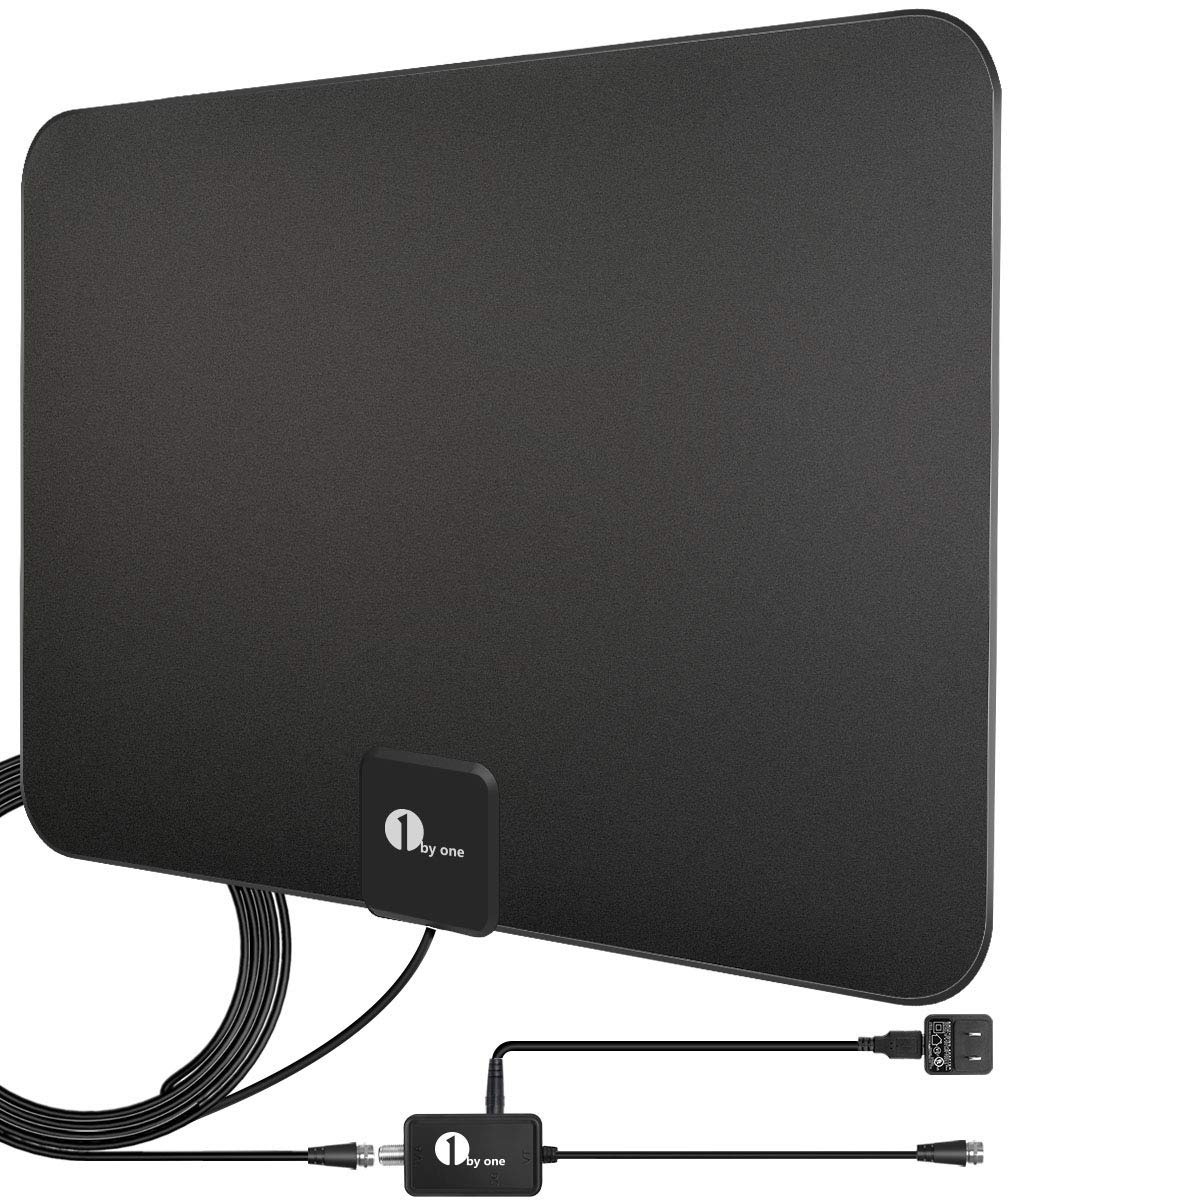 1byone Digital Amplified Indoor HD TV Antenna Up to 80 Miles Range, Amplifier Signal Booster Support 4K 1080P UHF VHF Freeview HDTV Channels with Coax Cable